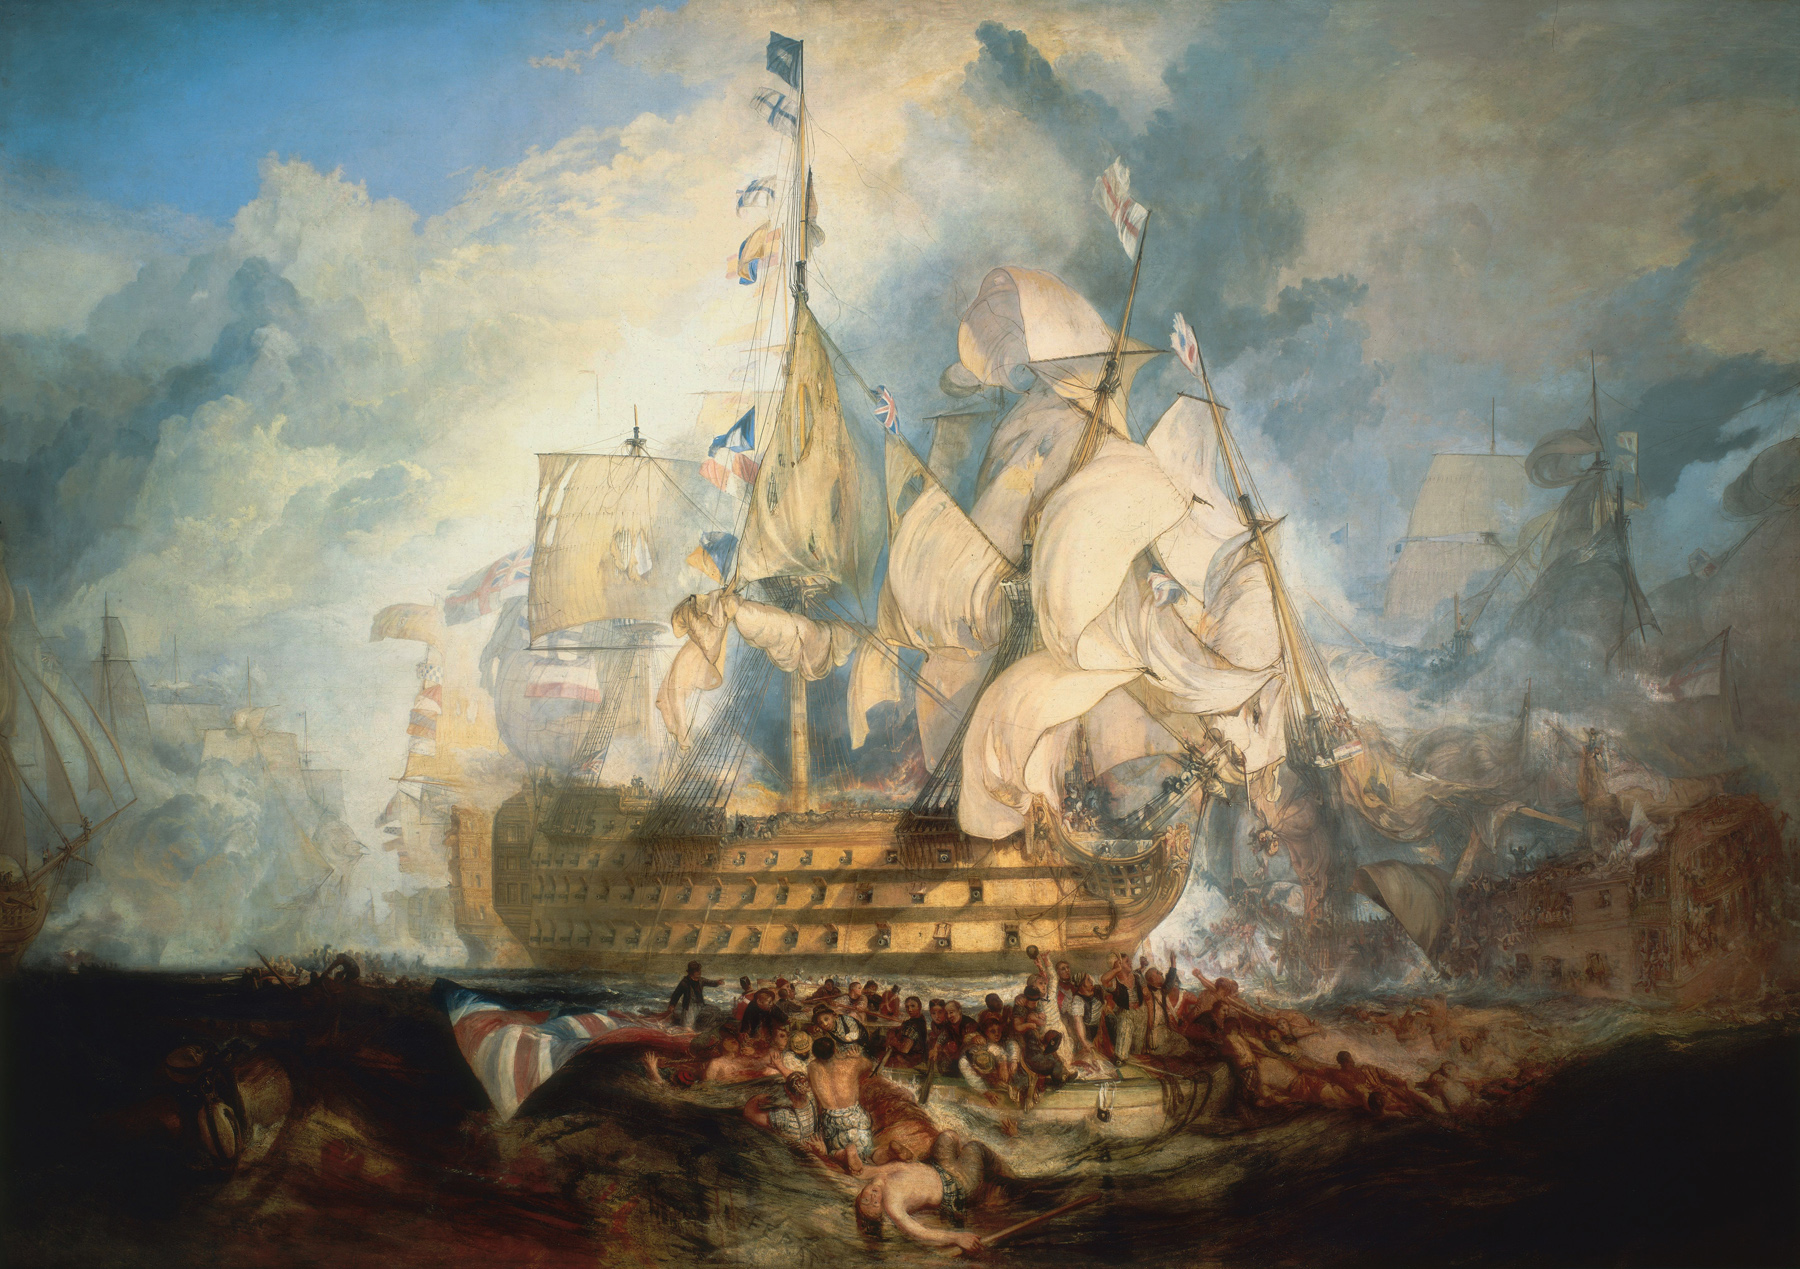 battle of trafalgar Battle of trafalgar: battle of trafalgar, (oct 21, 1805), naval engagement of the napoleonic wars, which established british naval supremacy for more than 100 years it was fought west of cape trafalgar, spain, between cádiz and the strait of gibraltar a fleet of 33 ships (18 french and 15 spanish) under admiral.